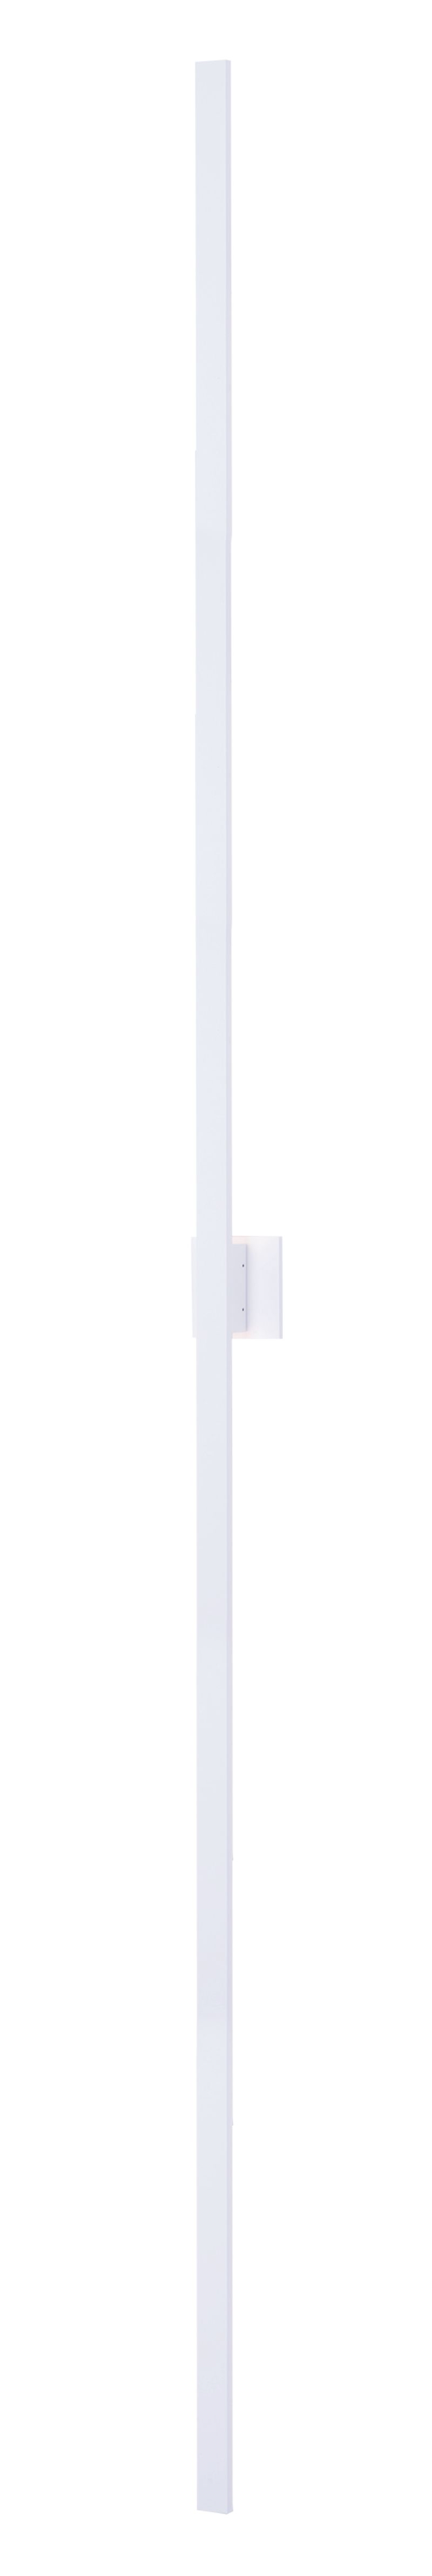 """Alumilux Sconce 4.5"""" 2-Light Outdoor Wall Mount - White"""